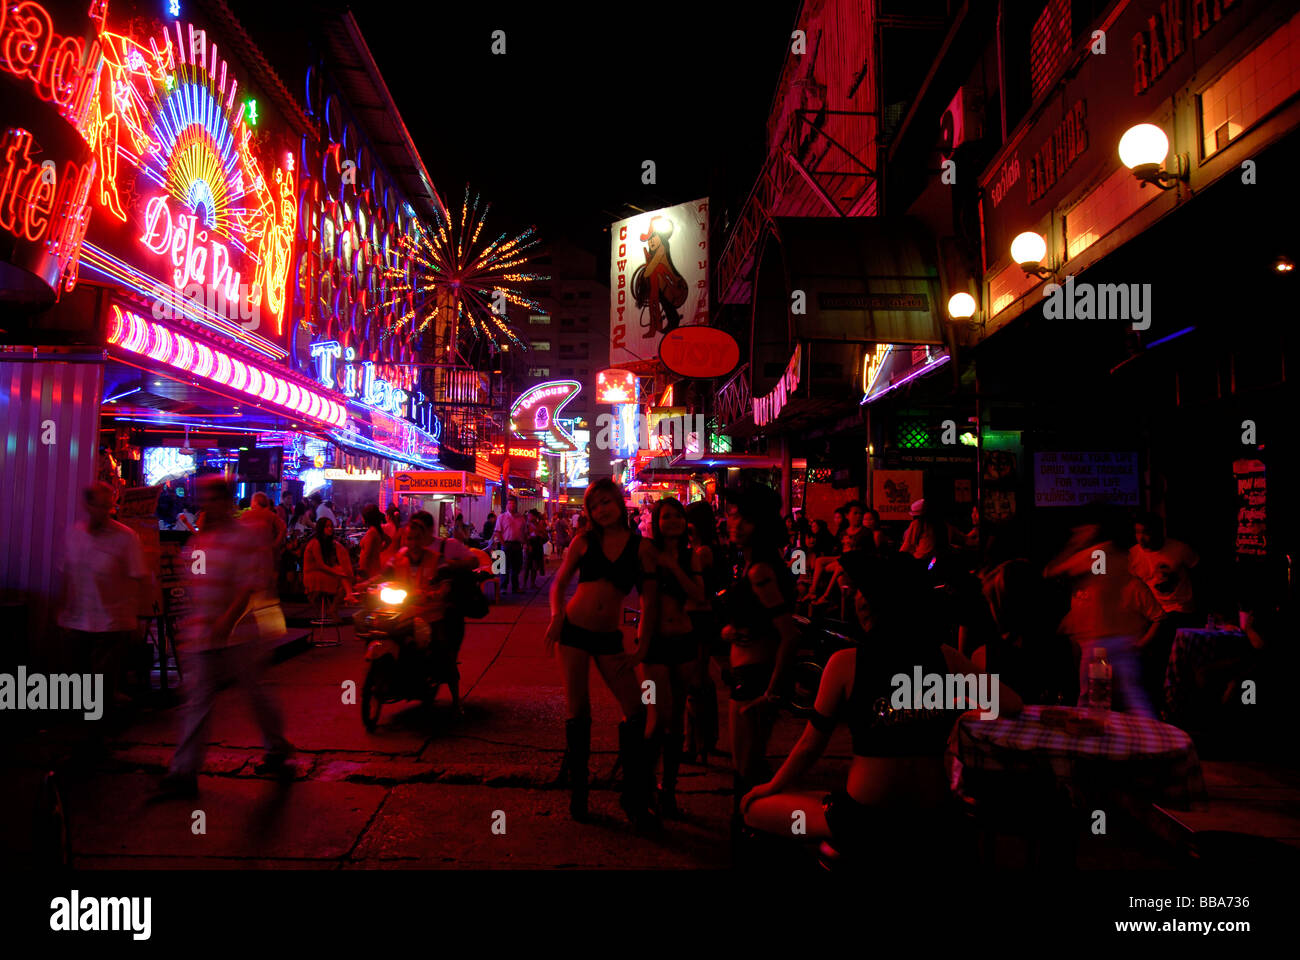 Nightlife, colorful neon signs, prostitutes in front of bars, red light district Soi Cowboy, Bangkok, Thailand, - Stock Image